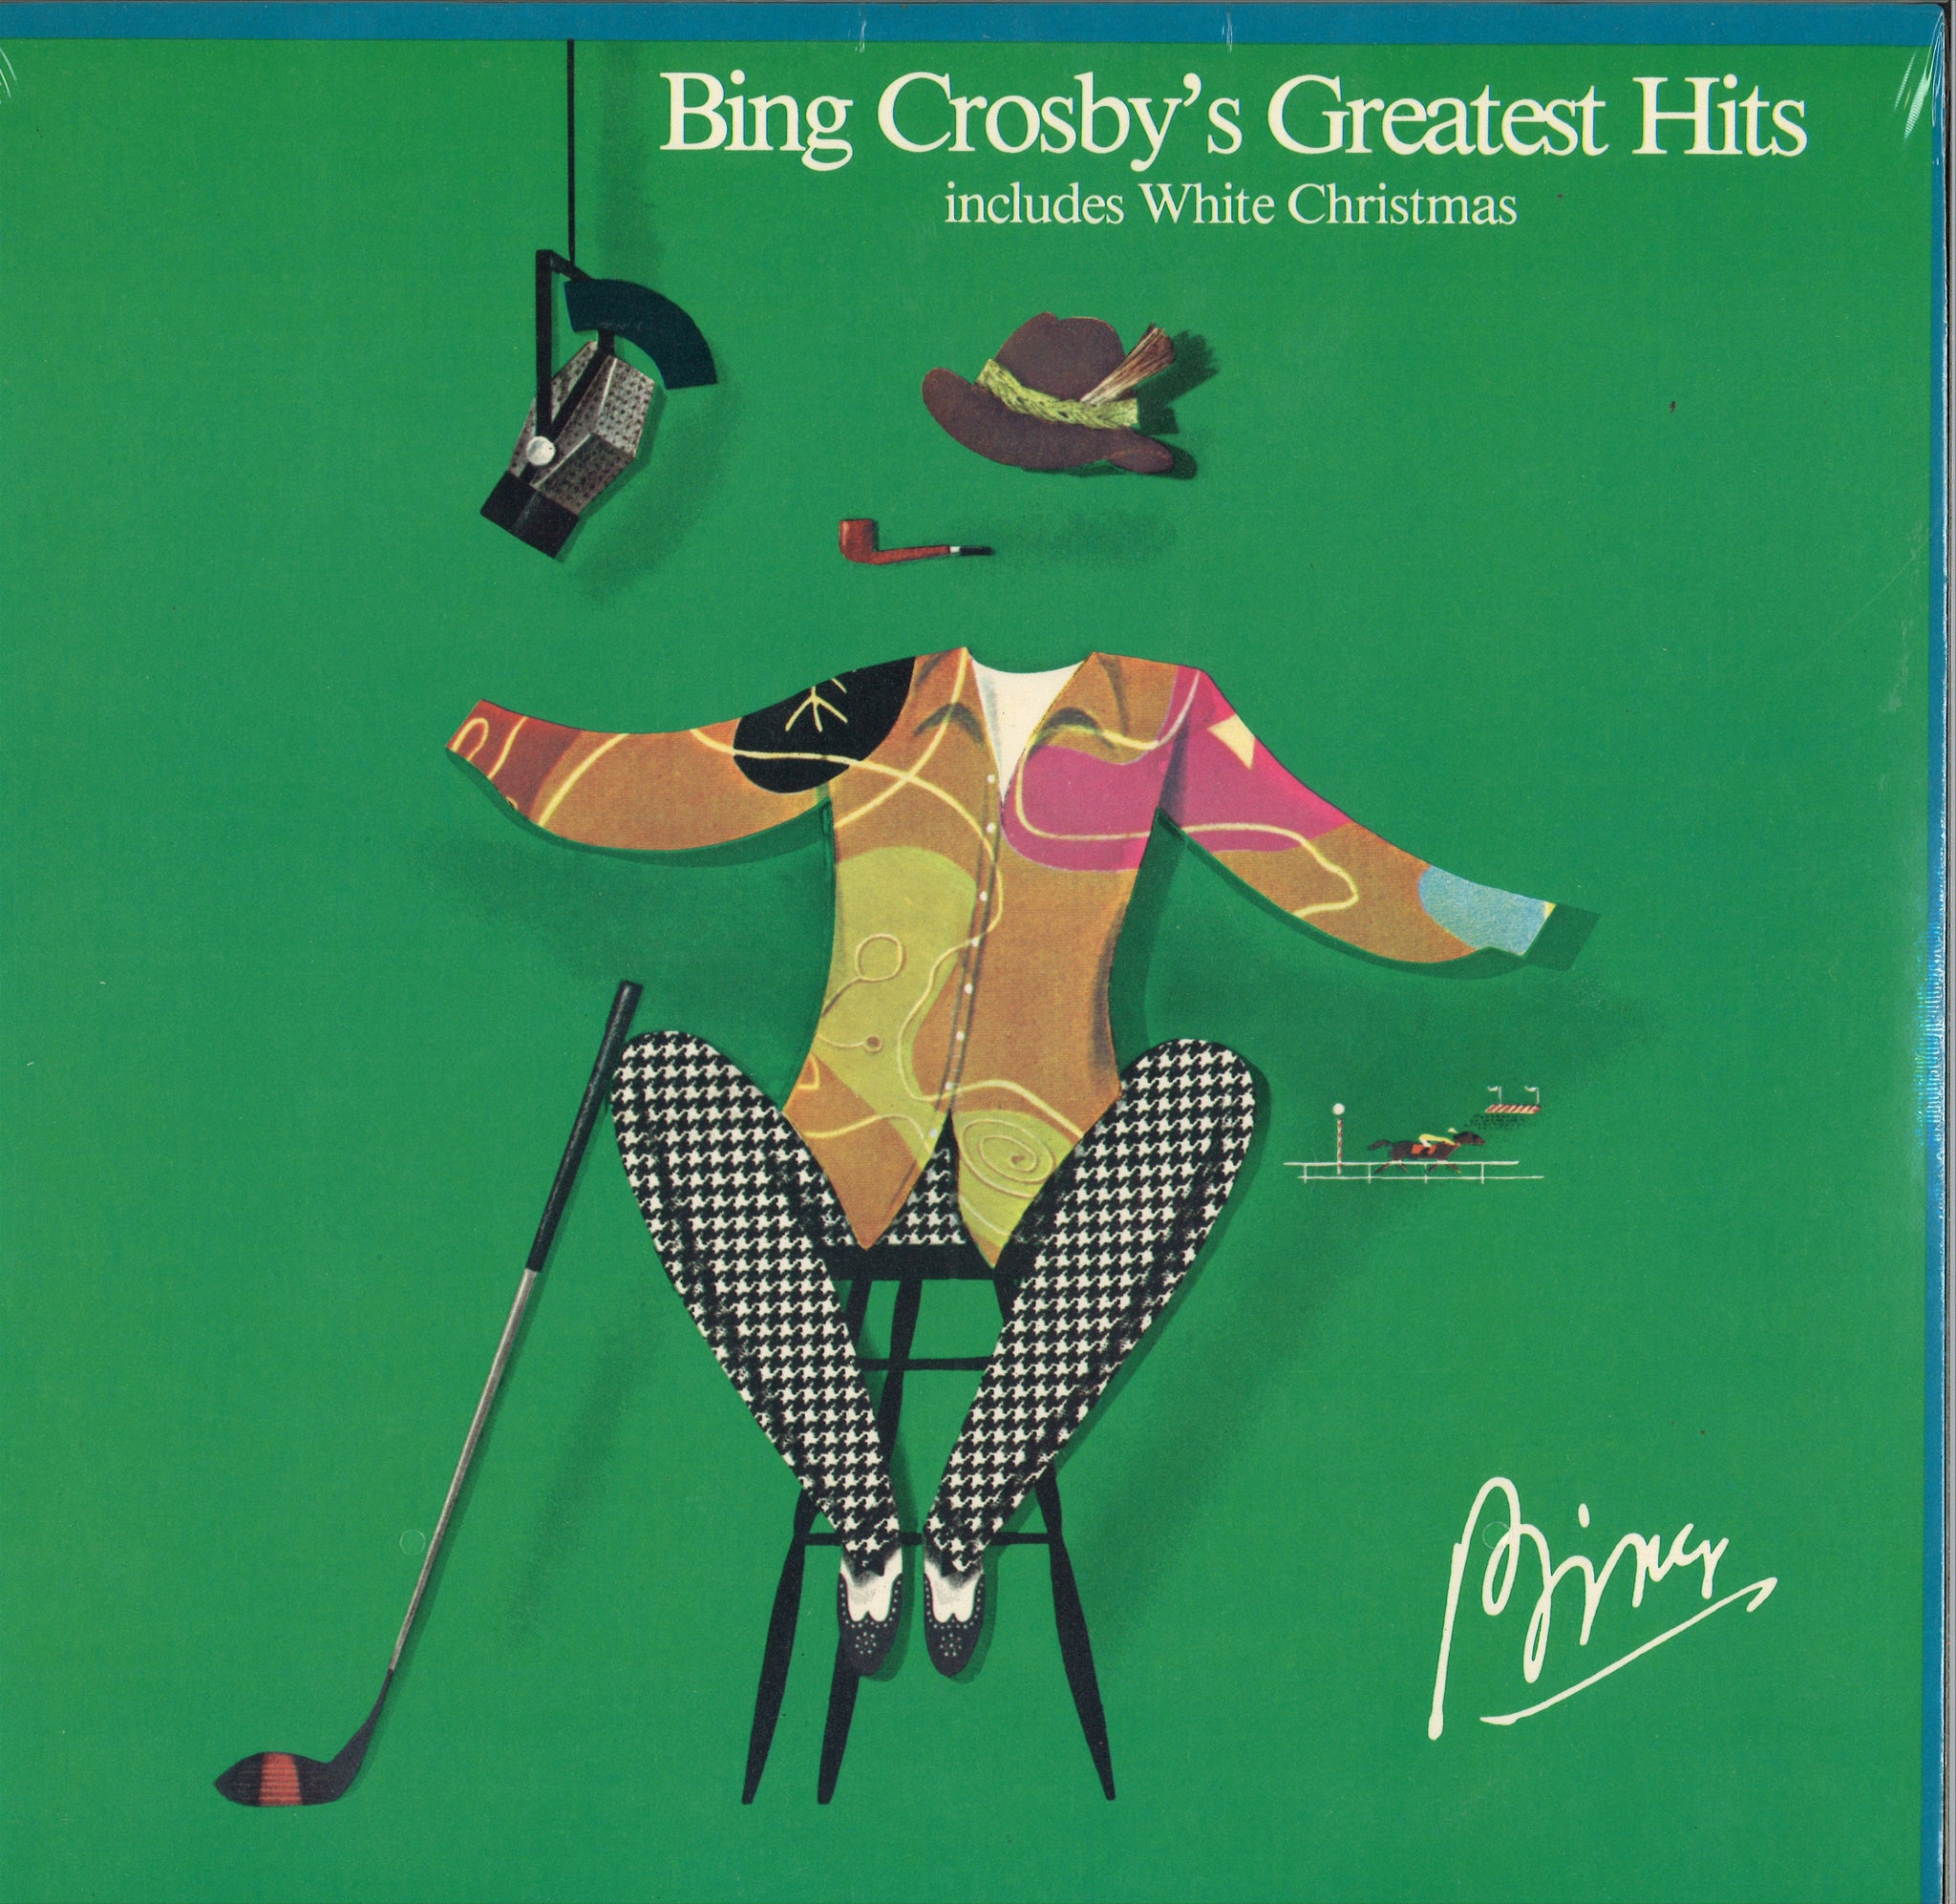 Bing Crosby Bing Crosby's Greatest Hit